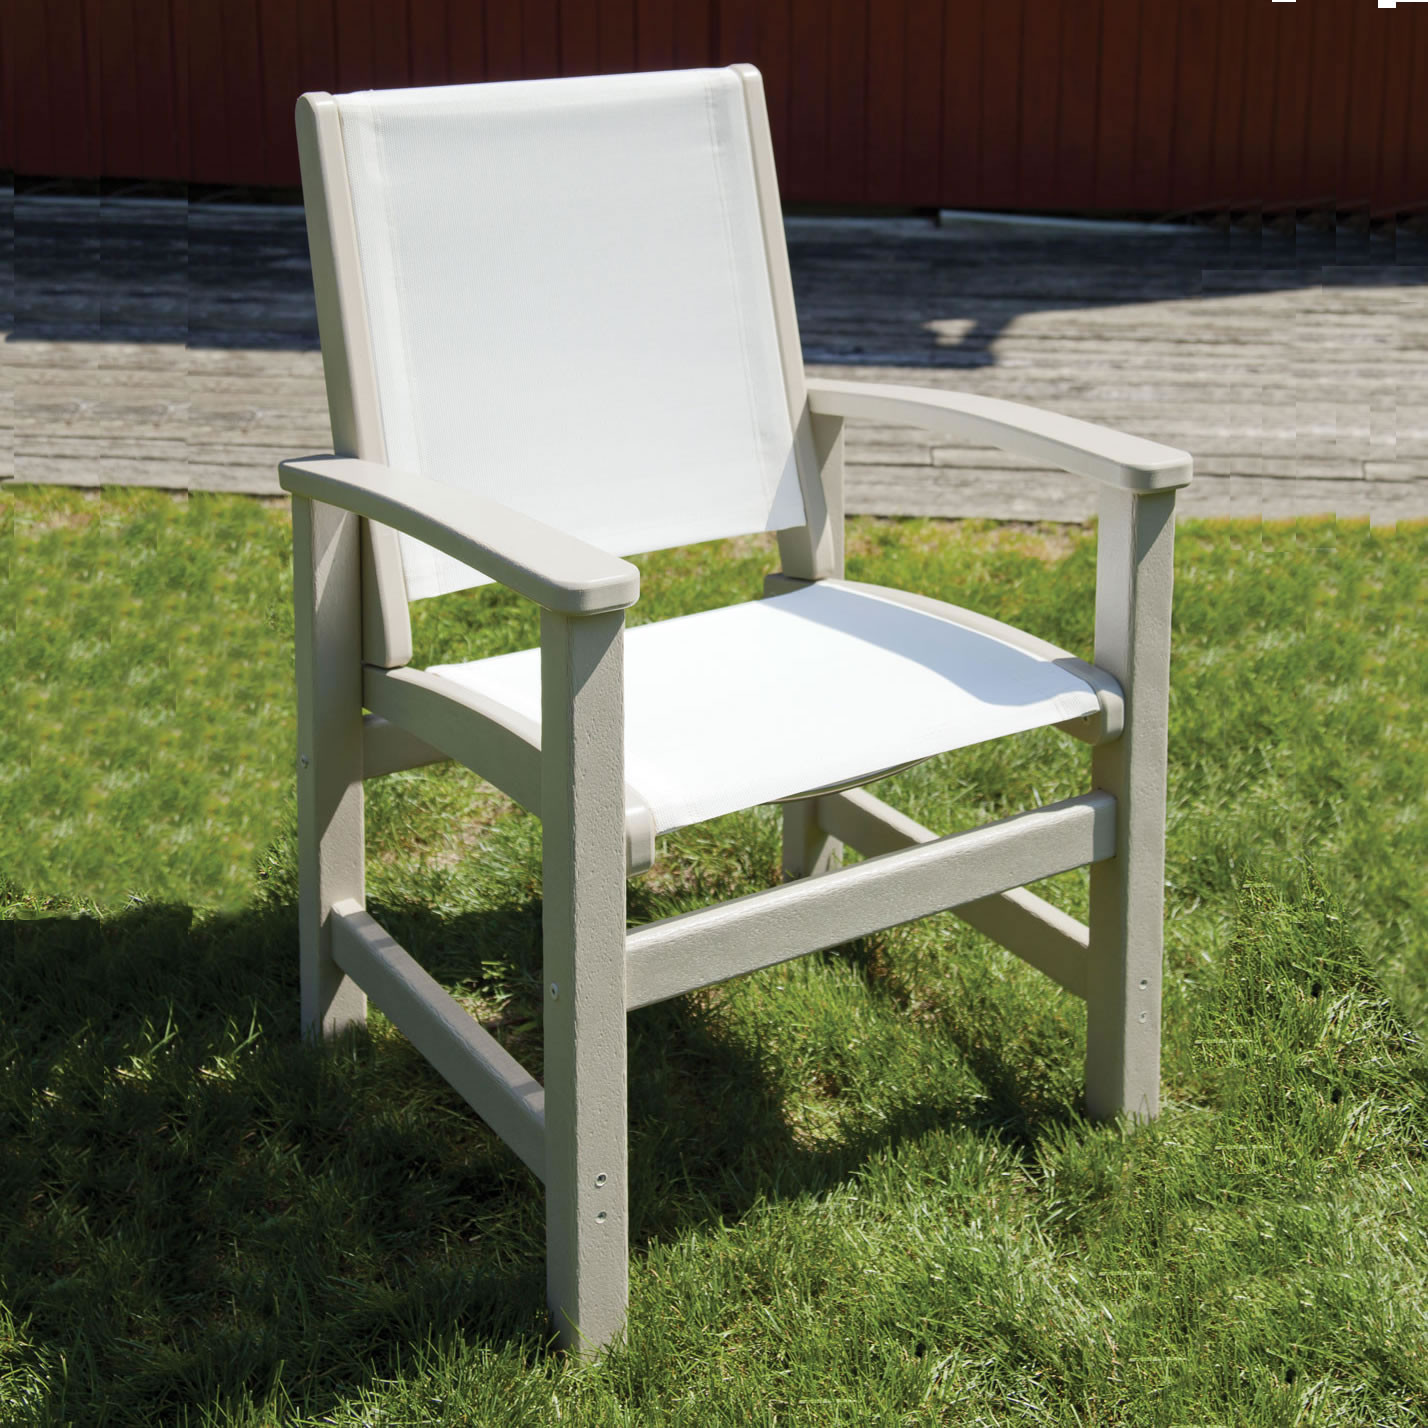 Stupendous Polywood Coastal Dining Chair Dailytribune Chair Design For Home Dailytribuneorg